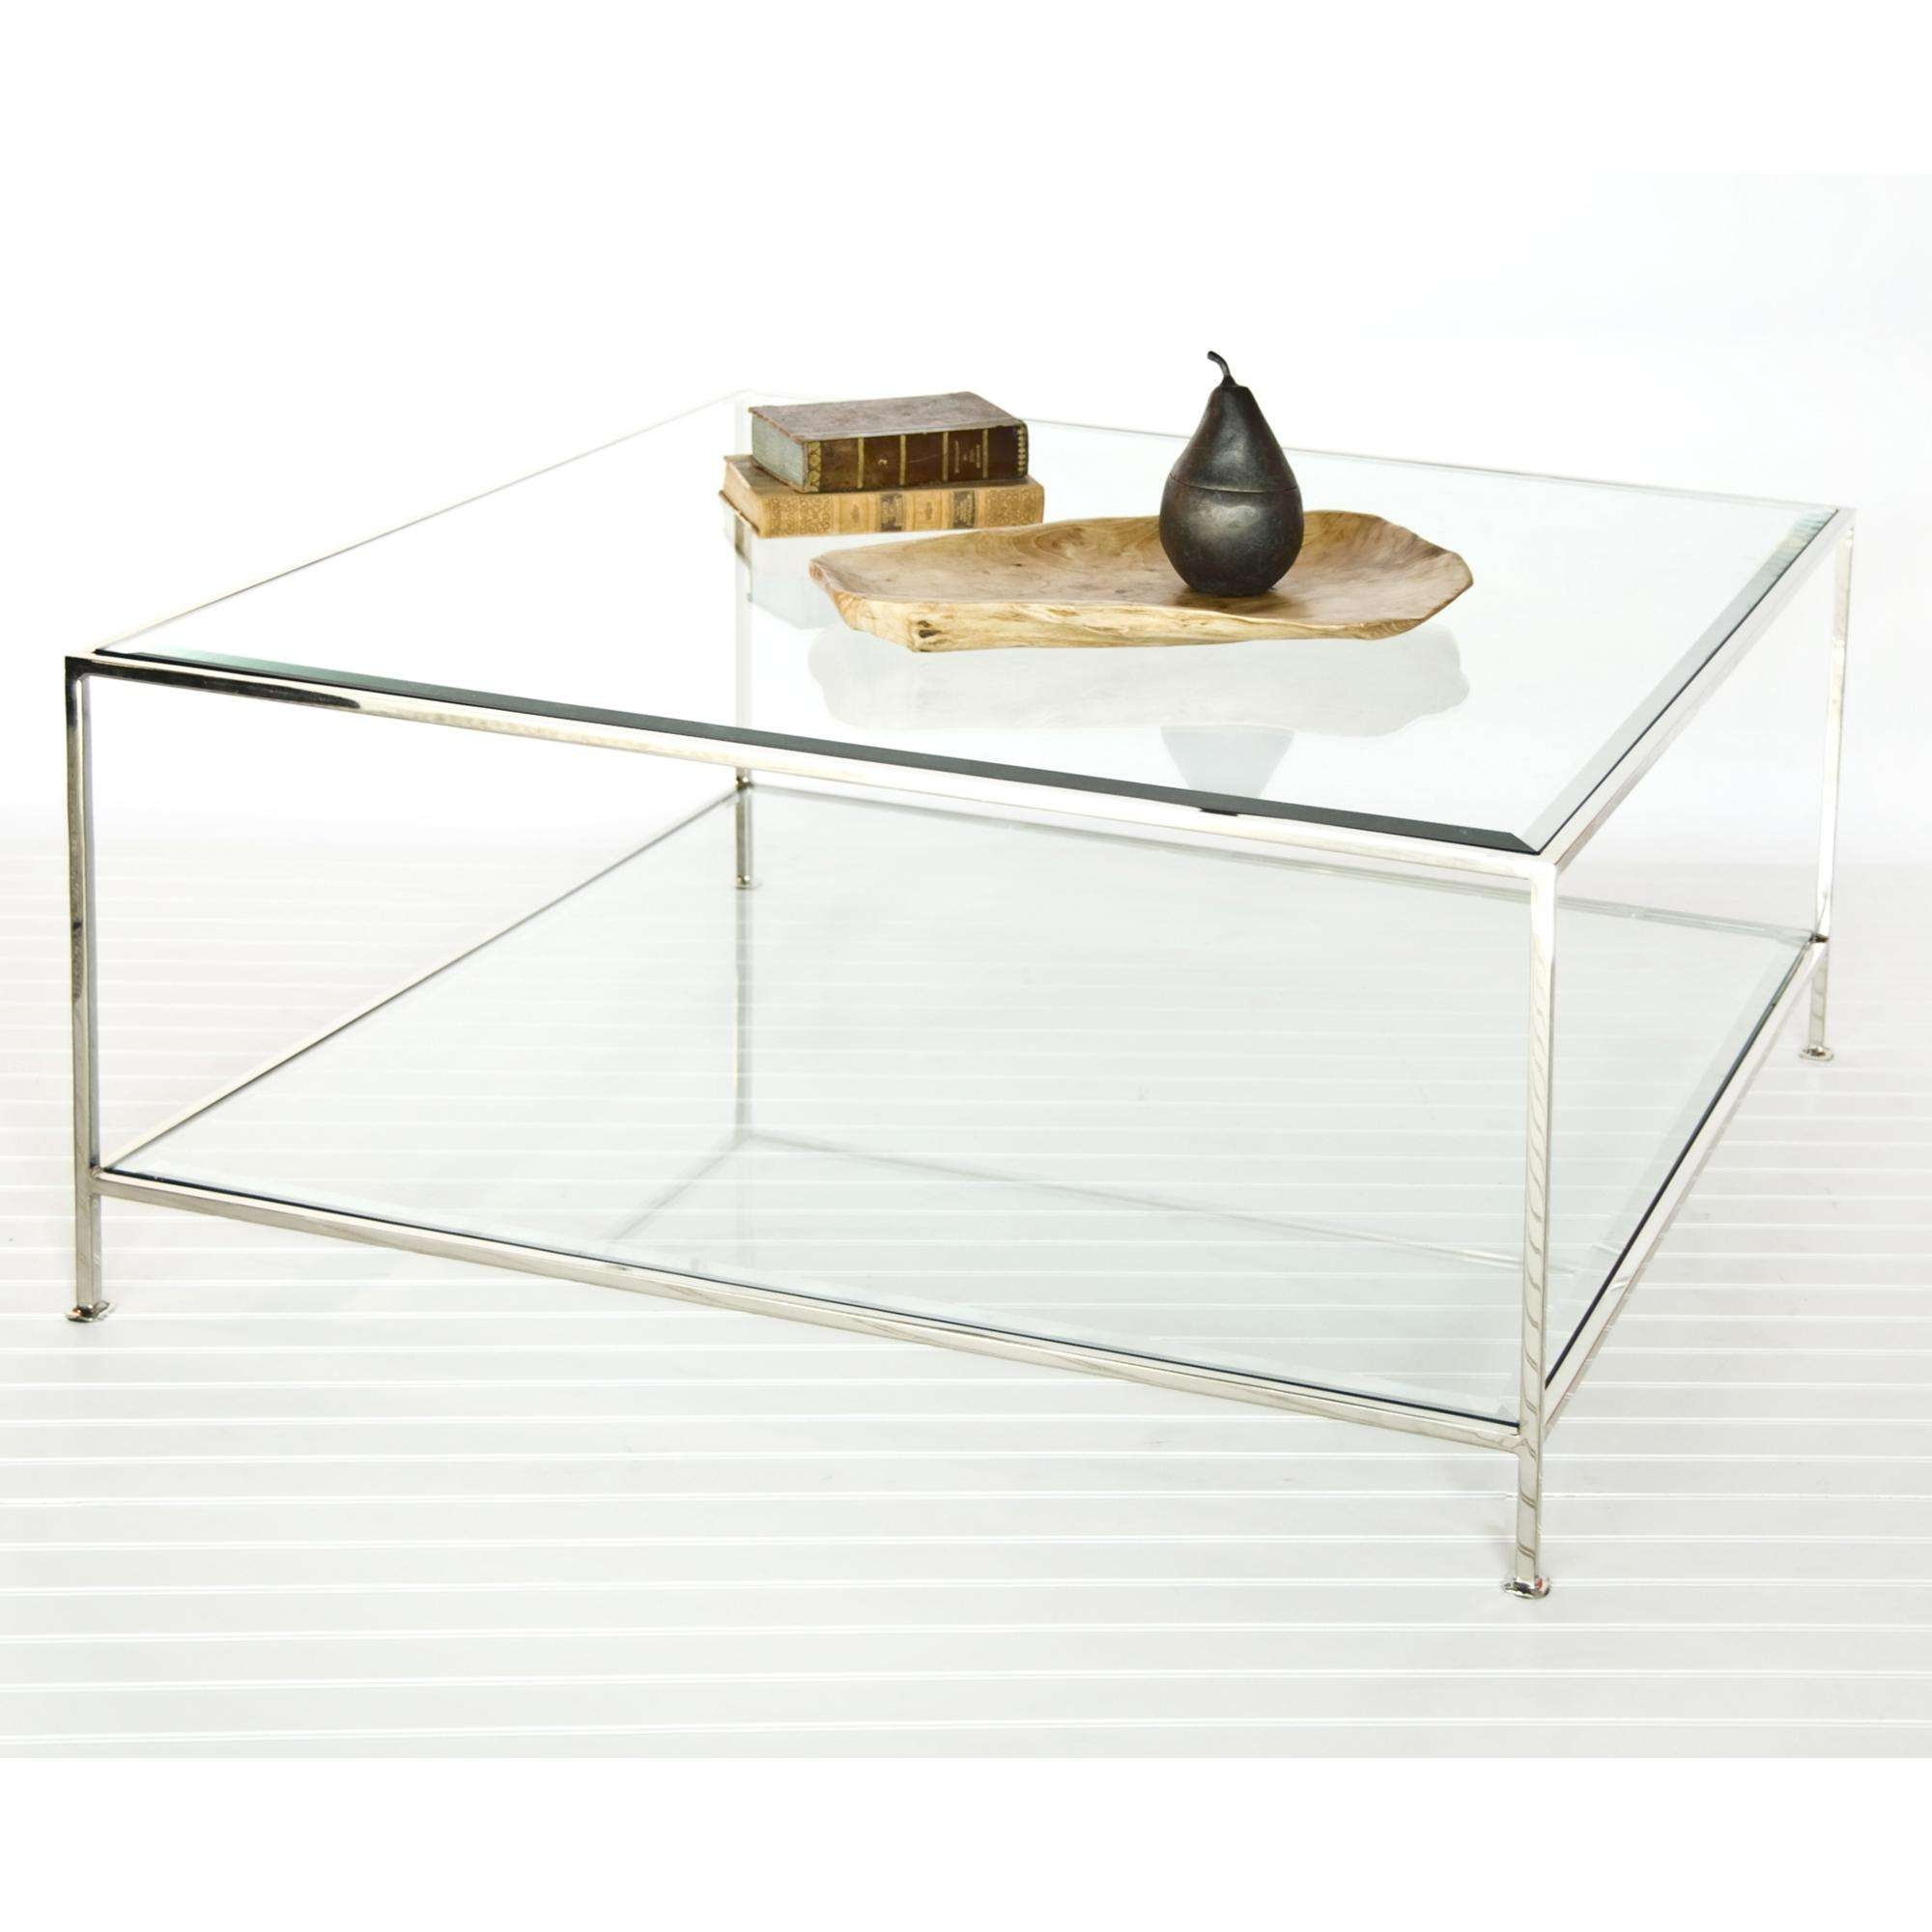 Recent Glass Coffee Table With Shelf Throughout Glass Coffee Table With Shelf Tags : Awesome Large Glass Coffee (View 16 of 20)